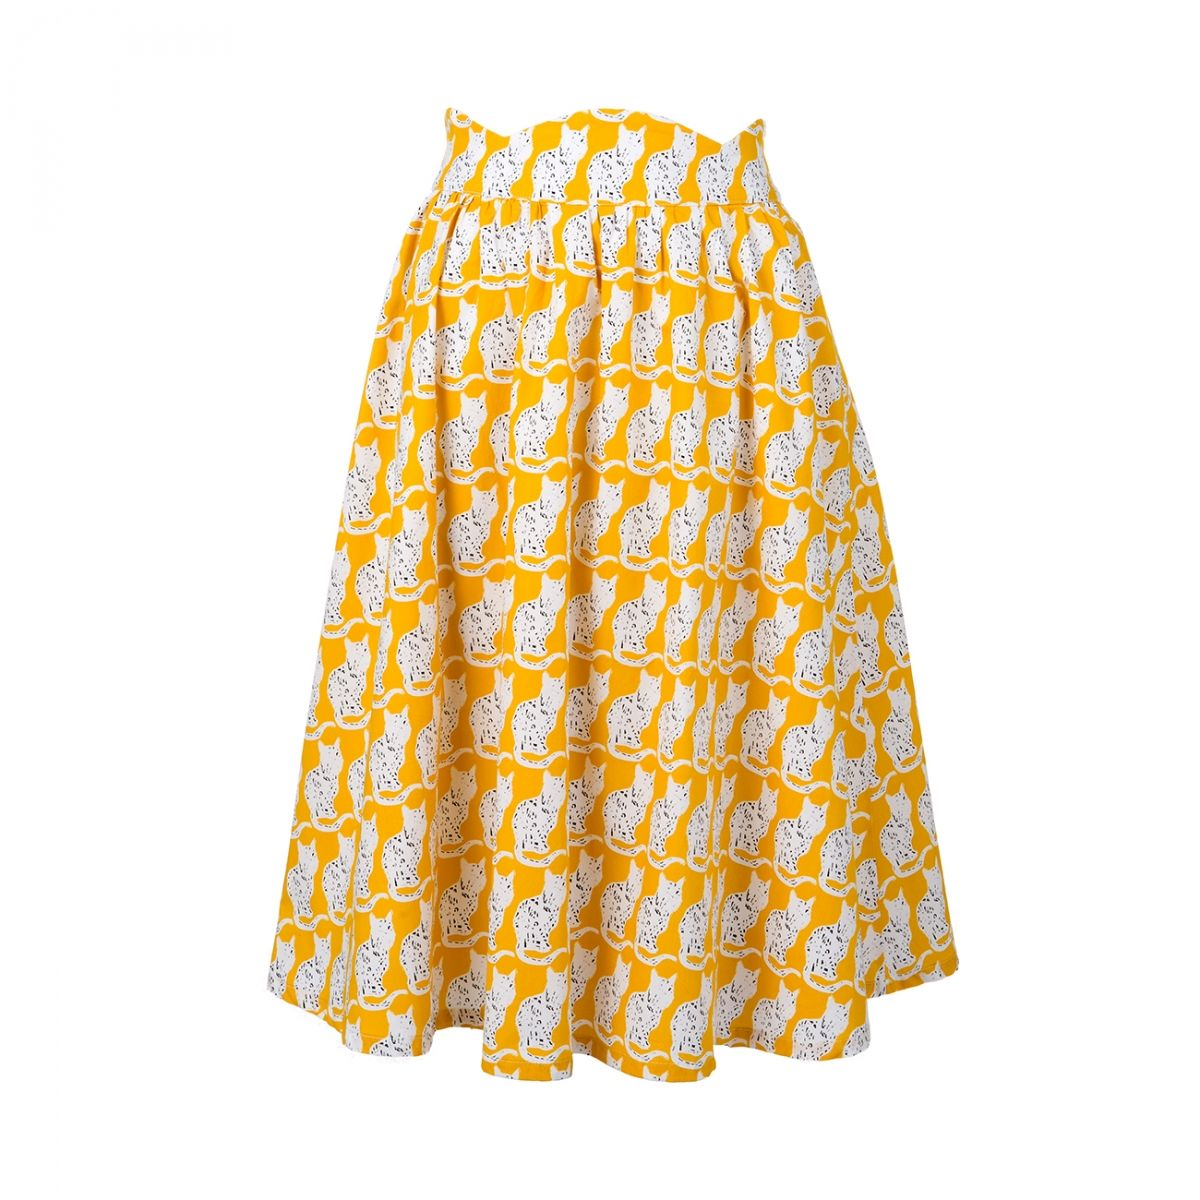 Pretty Kitty Skirt - Lee & Lawrie